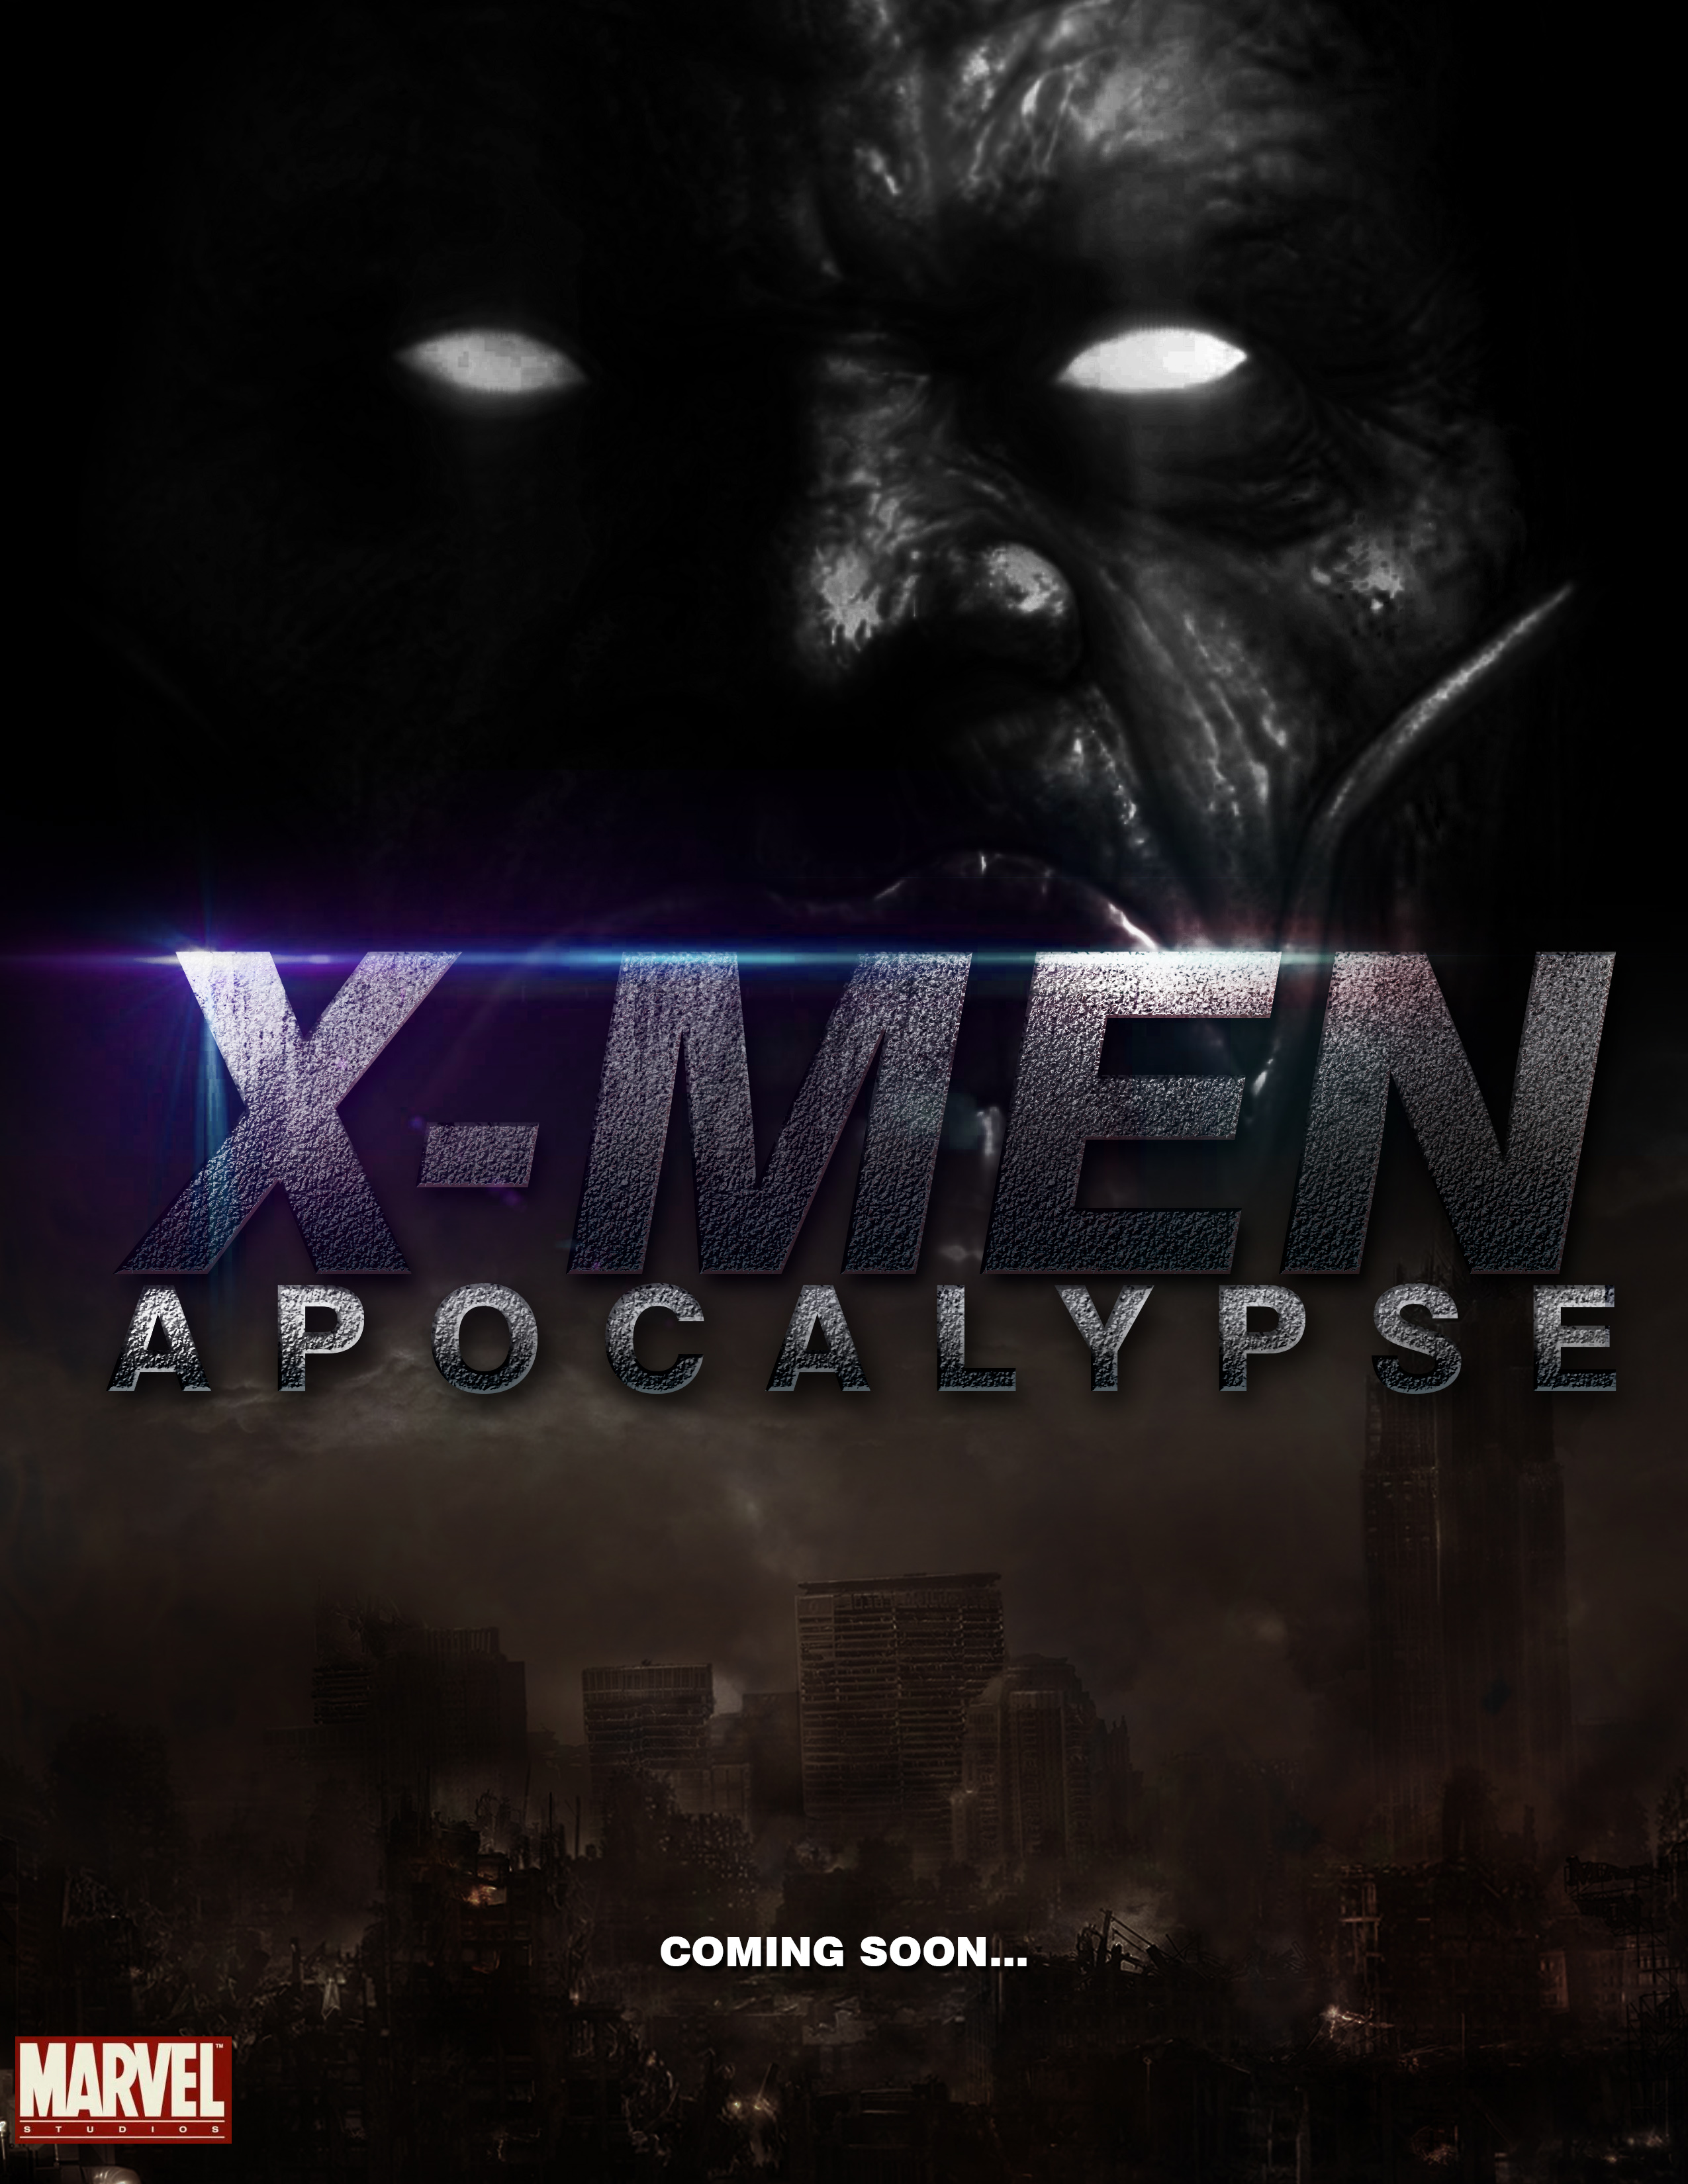 All X Men Apocalypse wallpapers 2550x3300